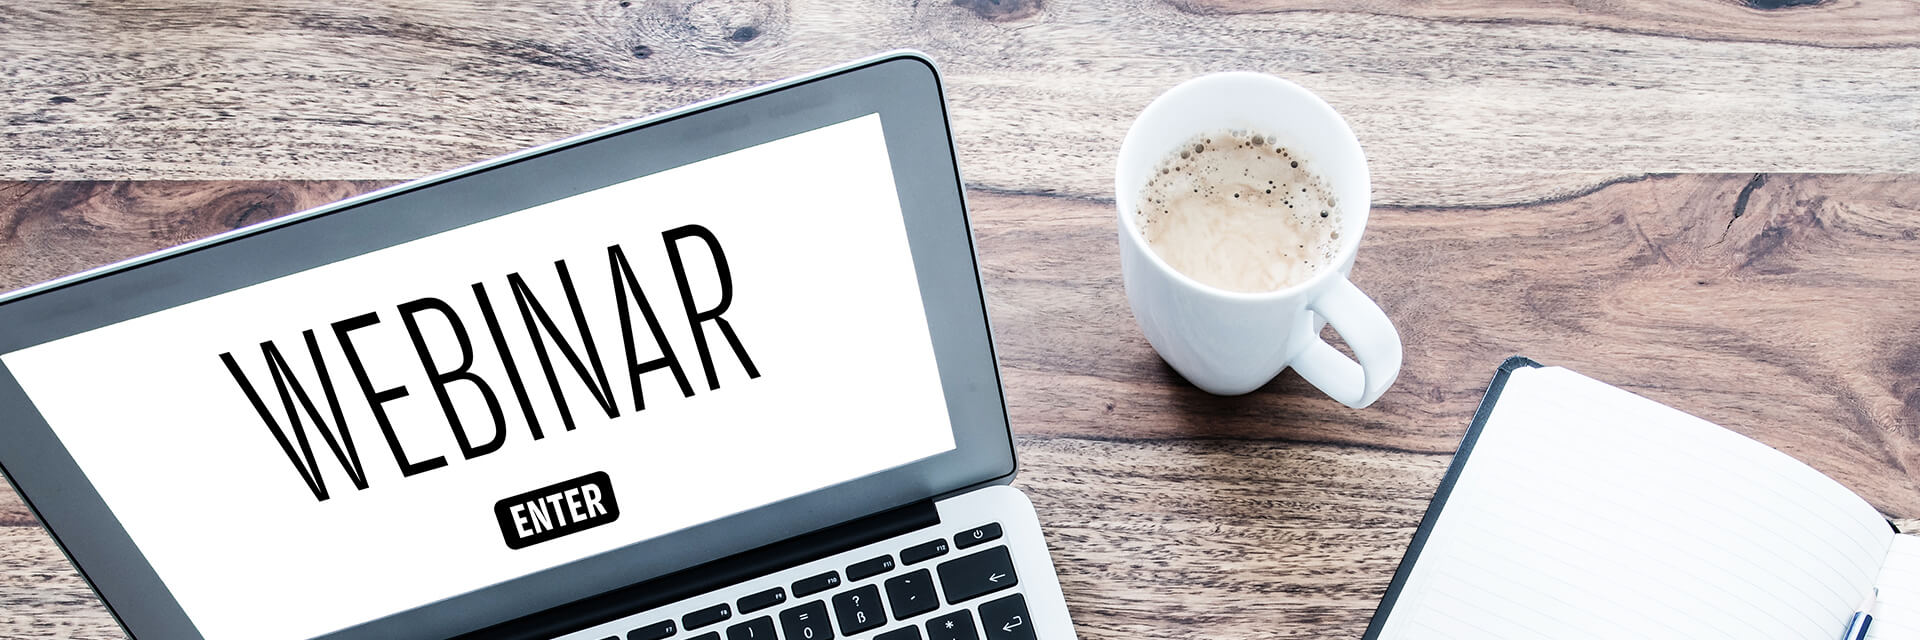 View our webinars on tax strategies, cyber security and independent contractor vs. employee classification.